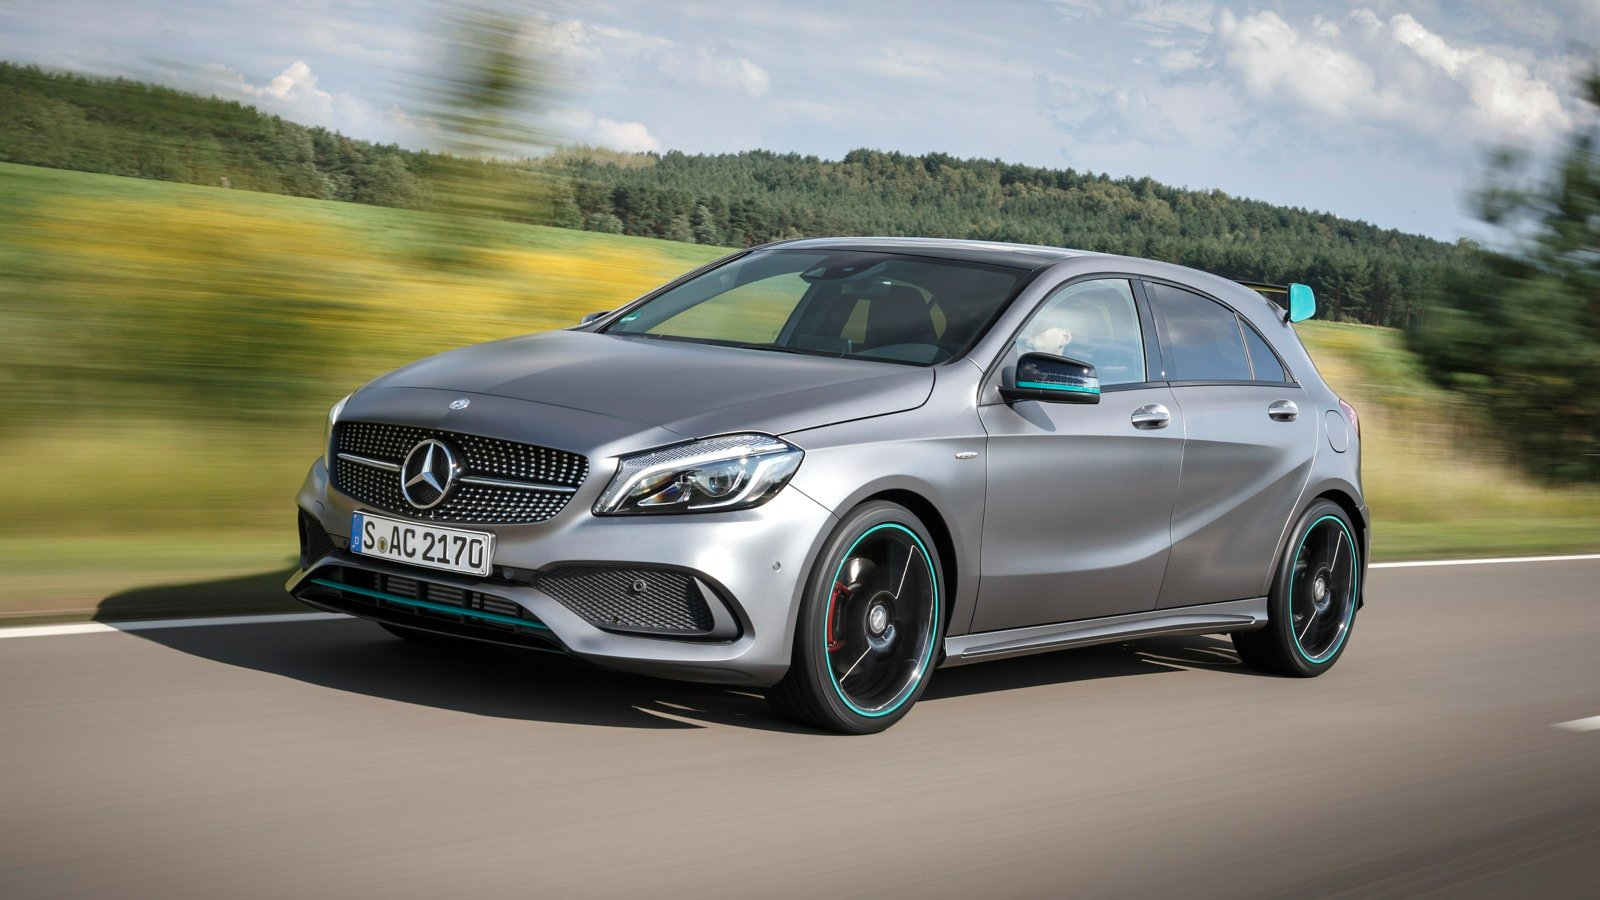 2016 Mercedes Benz A250 Sport 4matic Review Motorsport